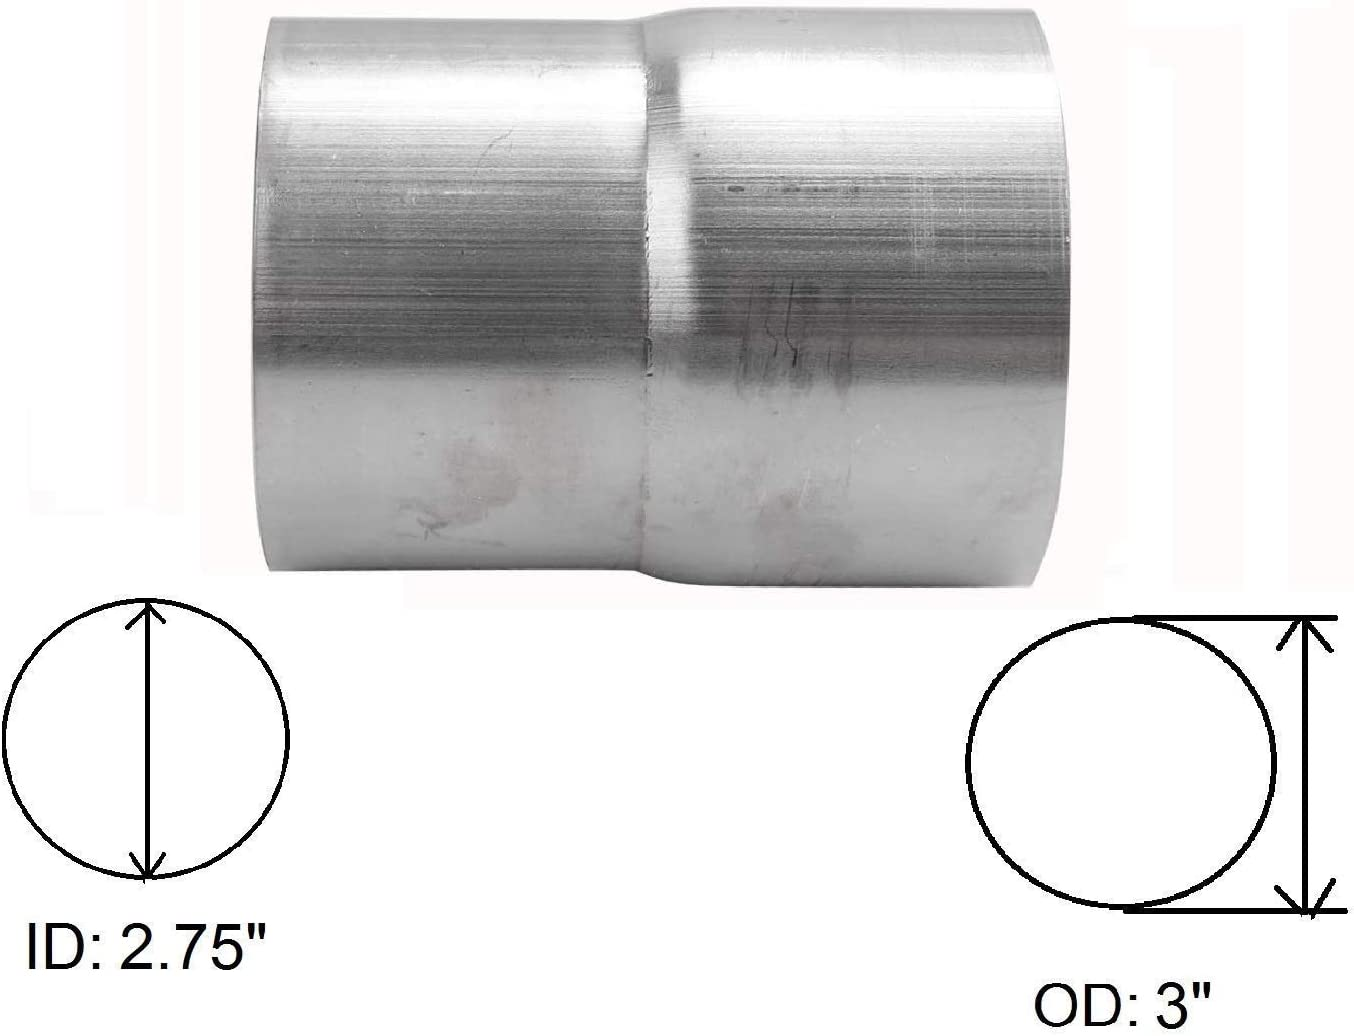 BETTERCLOUD Universal 2.75 Stainless Steel Butt Joint Band Exhaust Clamp /& 2.75 ID to 3 OD Exhaust Pipe Adapter Connector Reducer Mild Steel